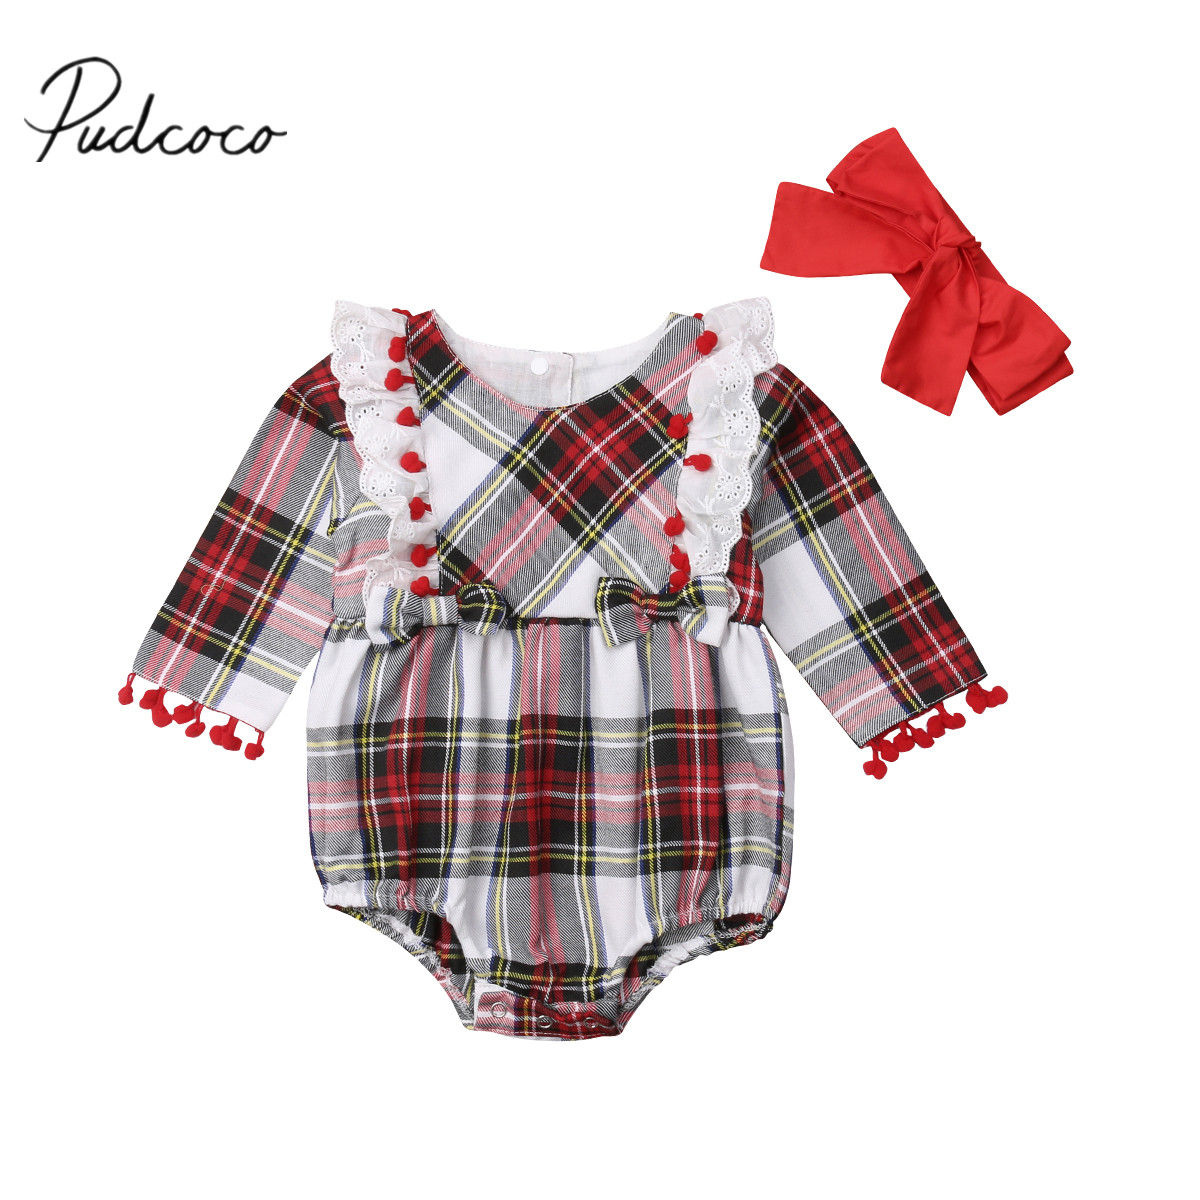 US Newborn Baby Girls Plaids Ruffled Romper Long Sleeves Jumpsuit Clothes 0-24M